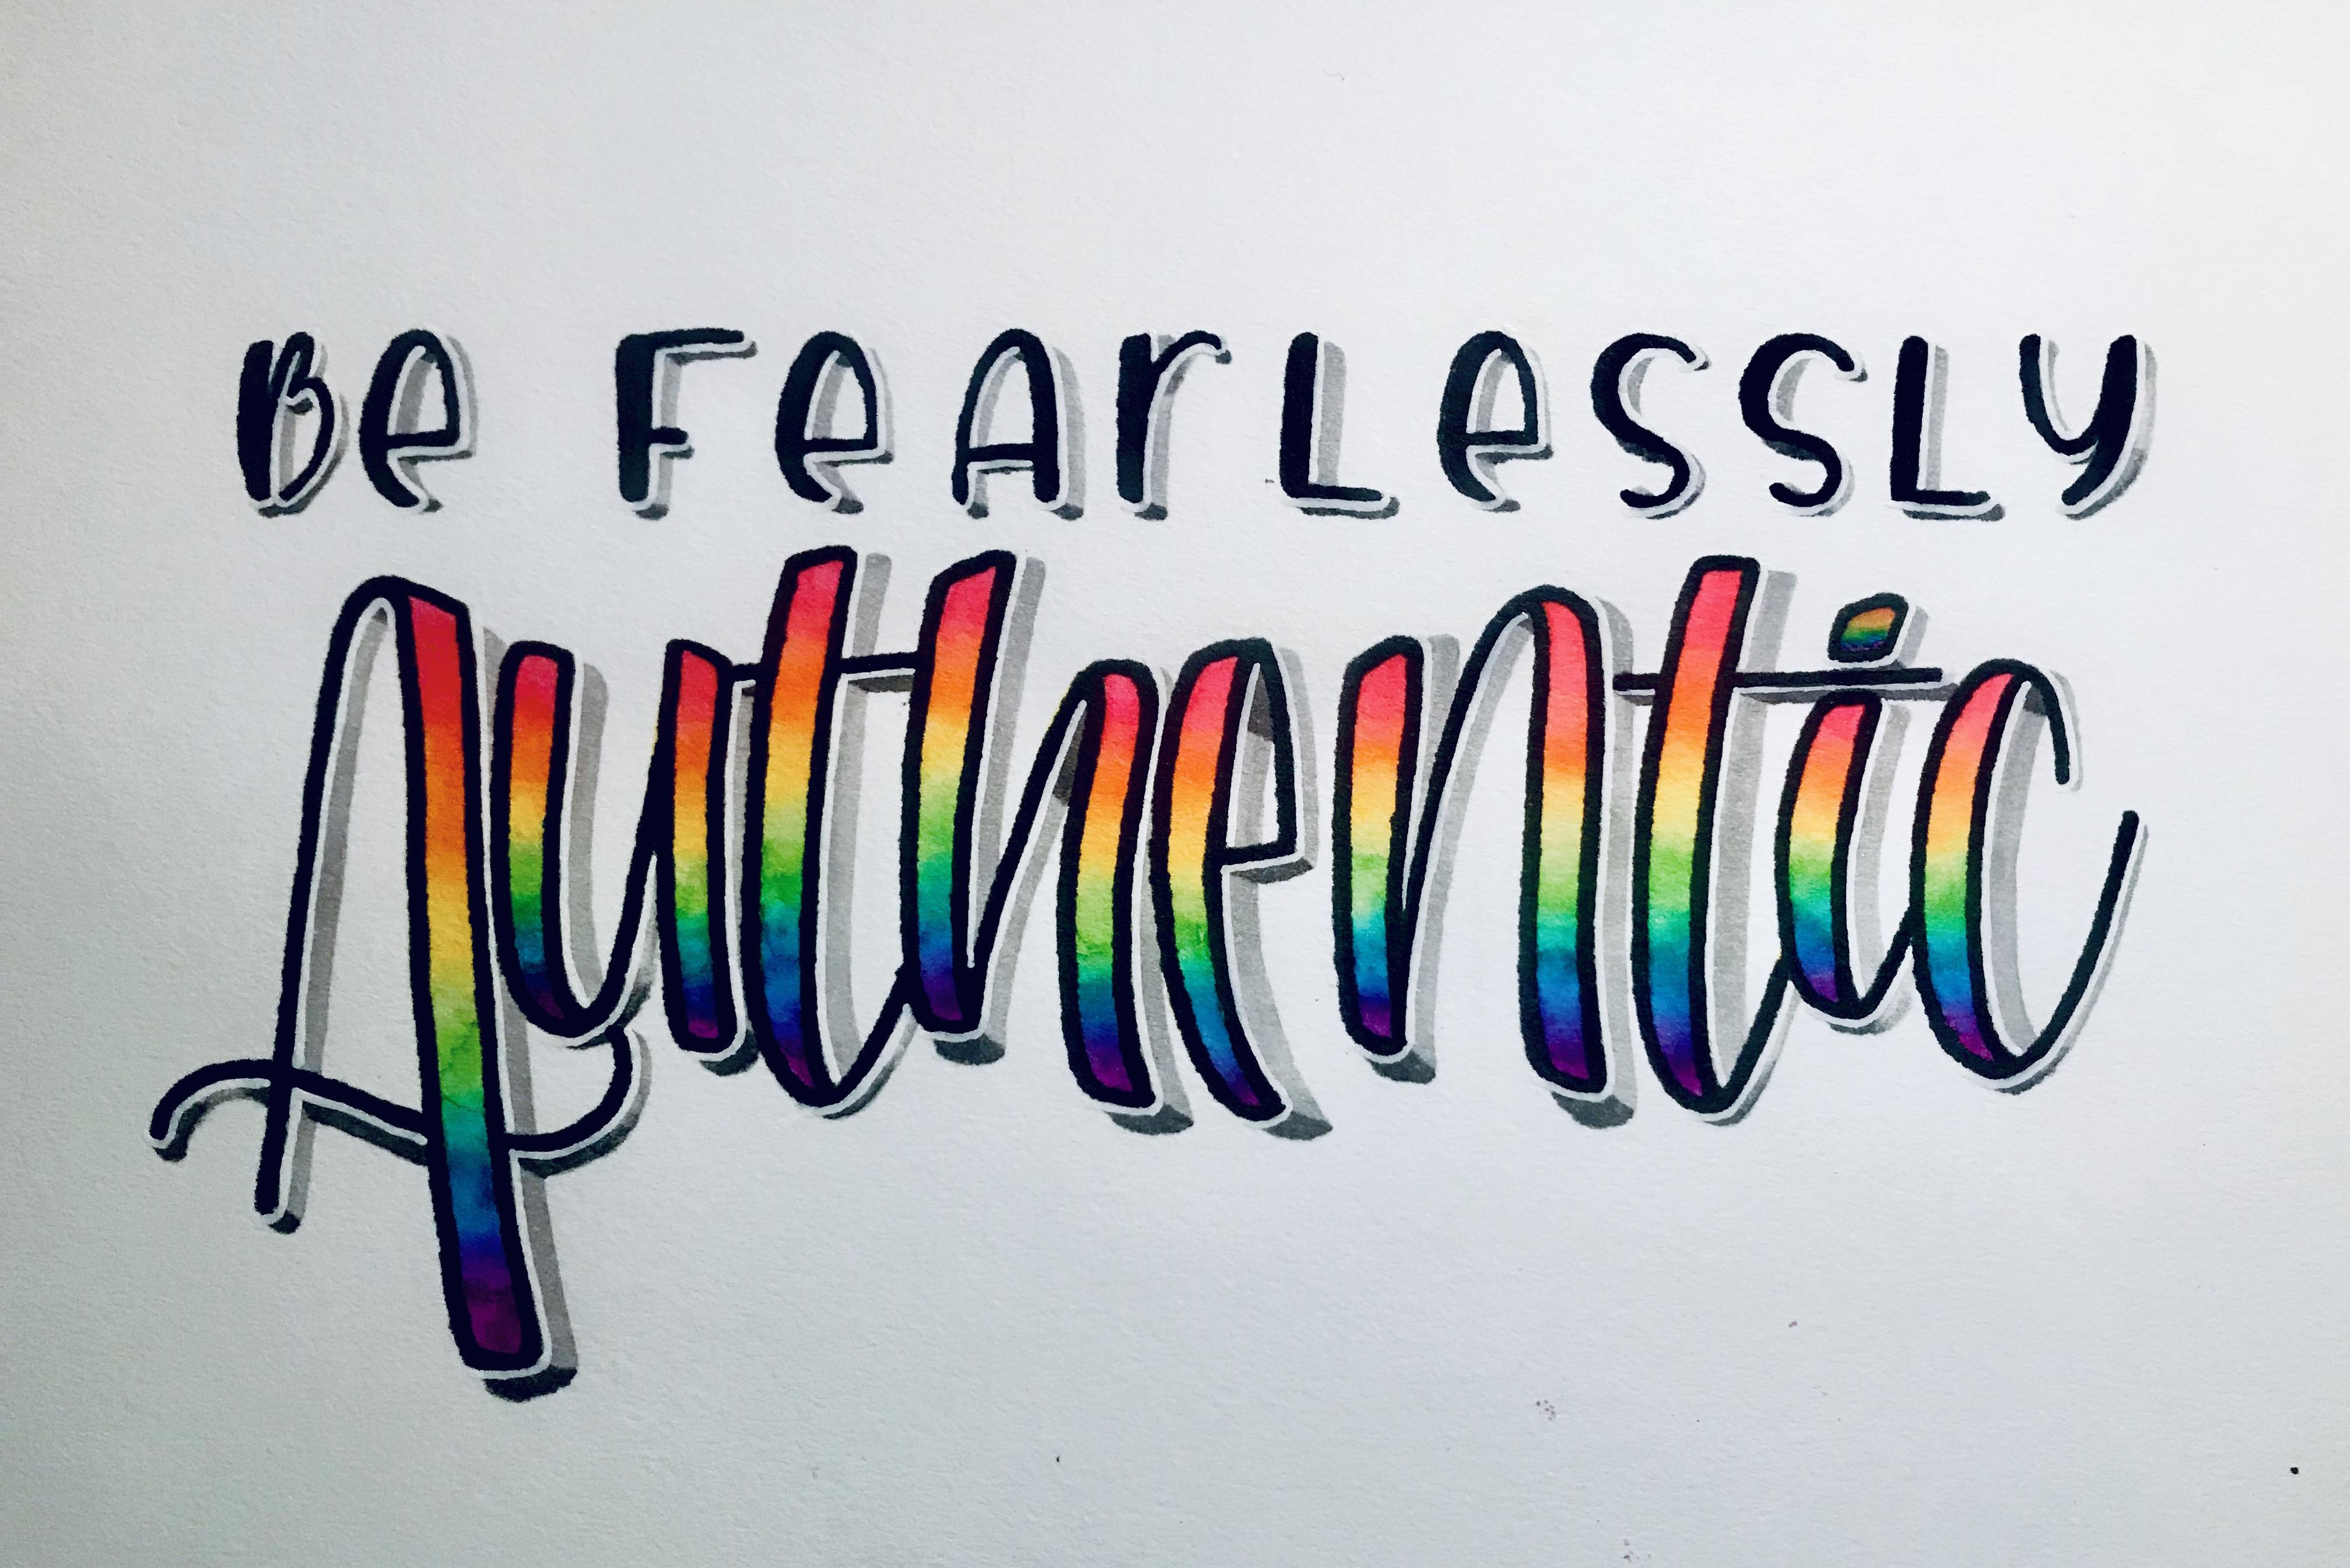 Be fearlessly authentic text illustrated by Mia Woo.